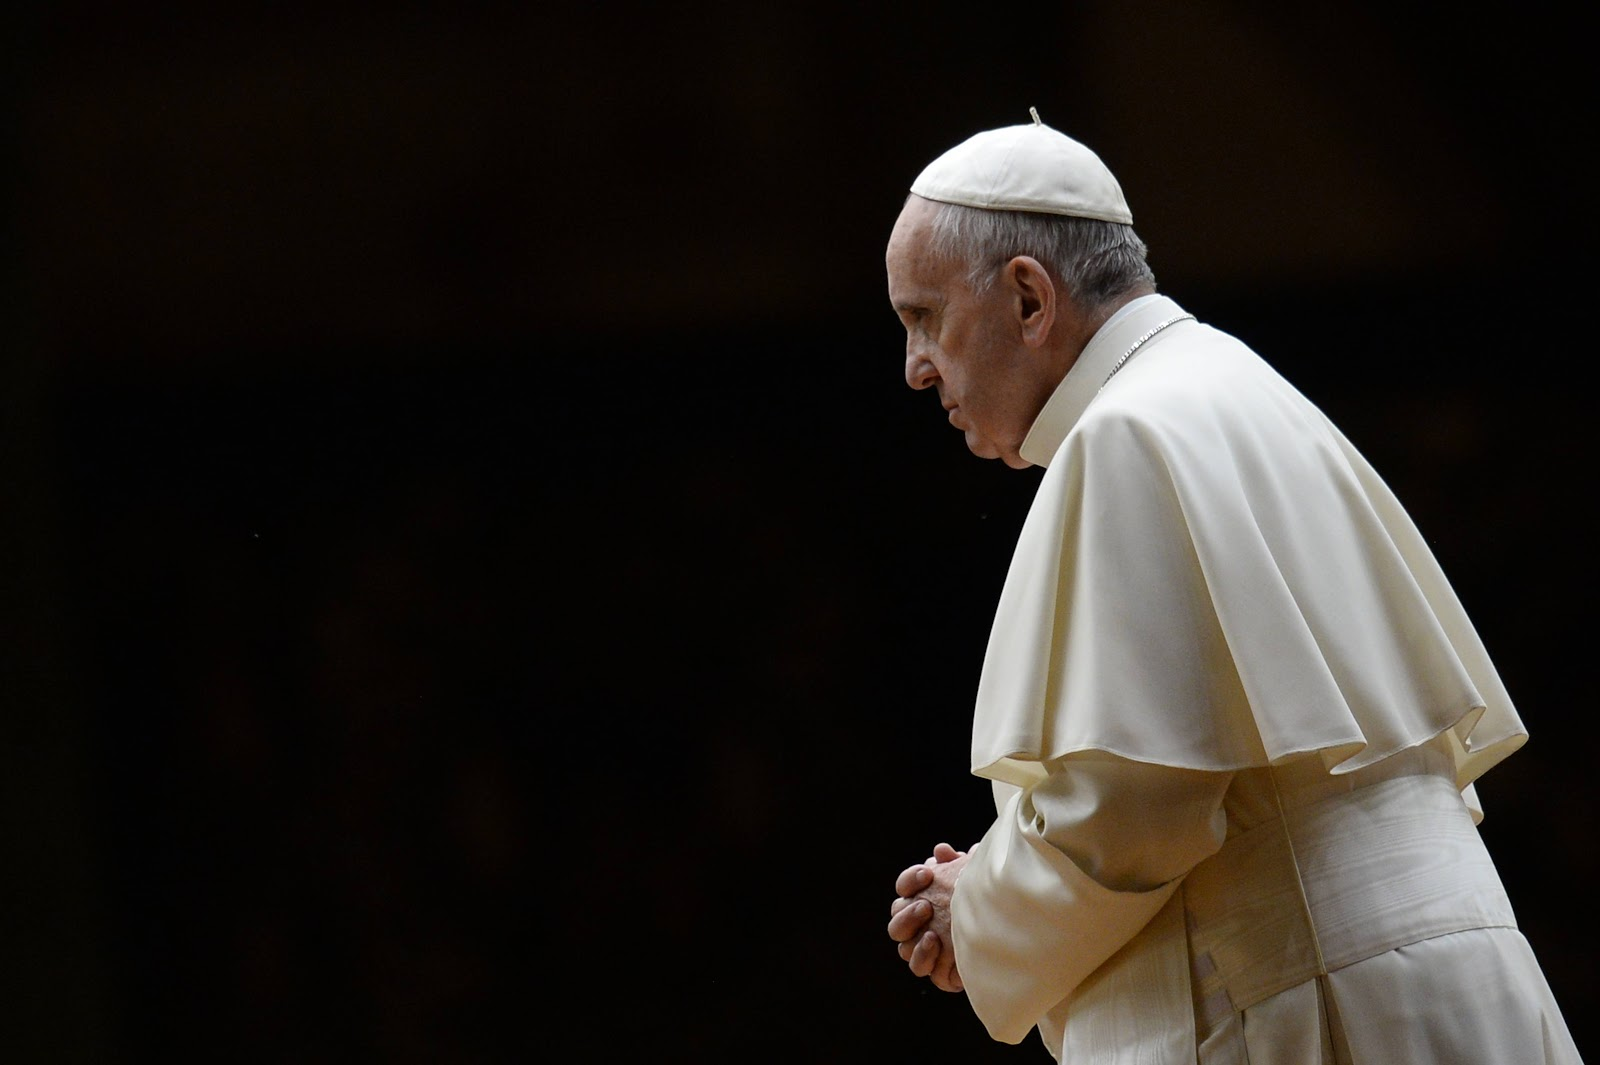 READ: The Pope's preface to new book by sexual abuse victim